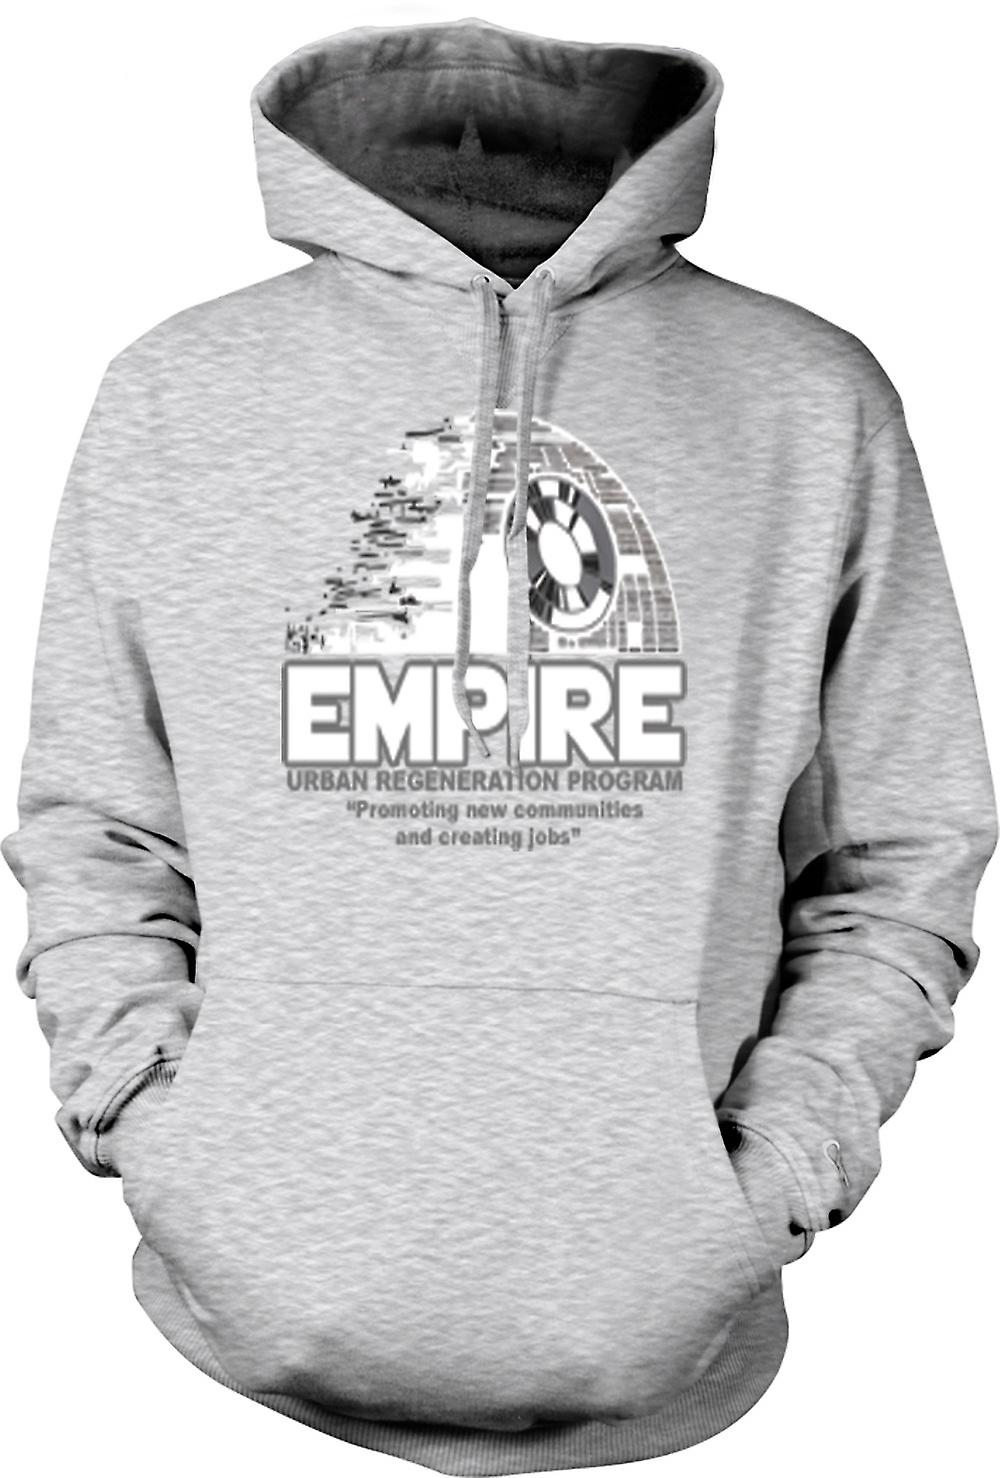 Mens Hoodie - Empire régénération urbaine Death Star - Star Wars